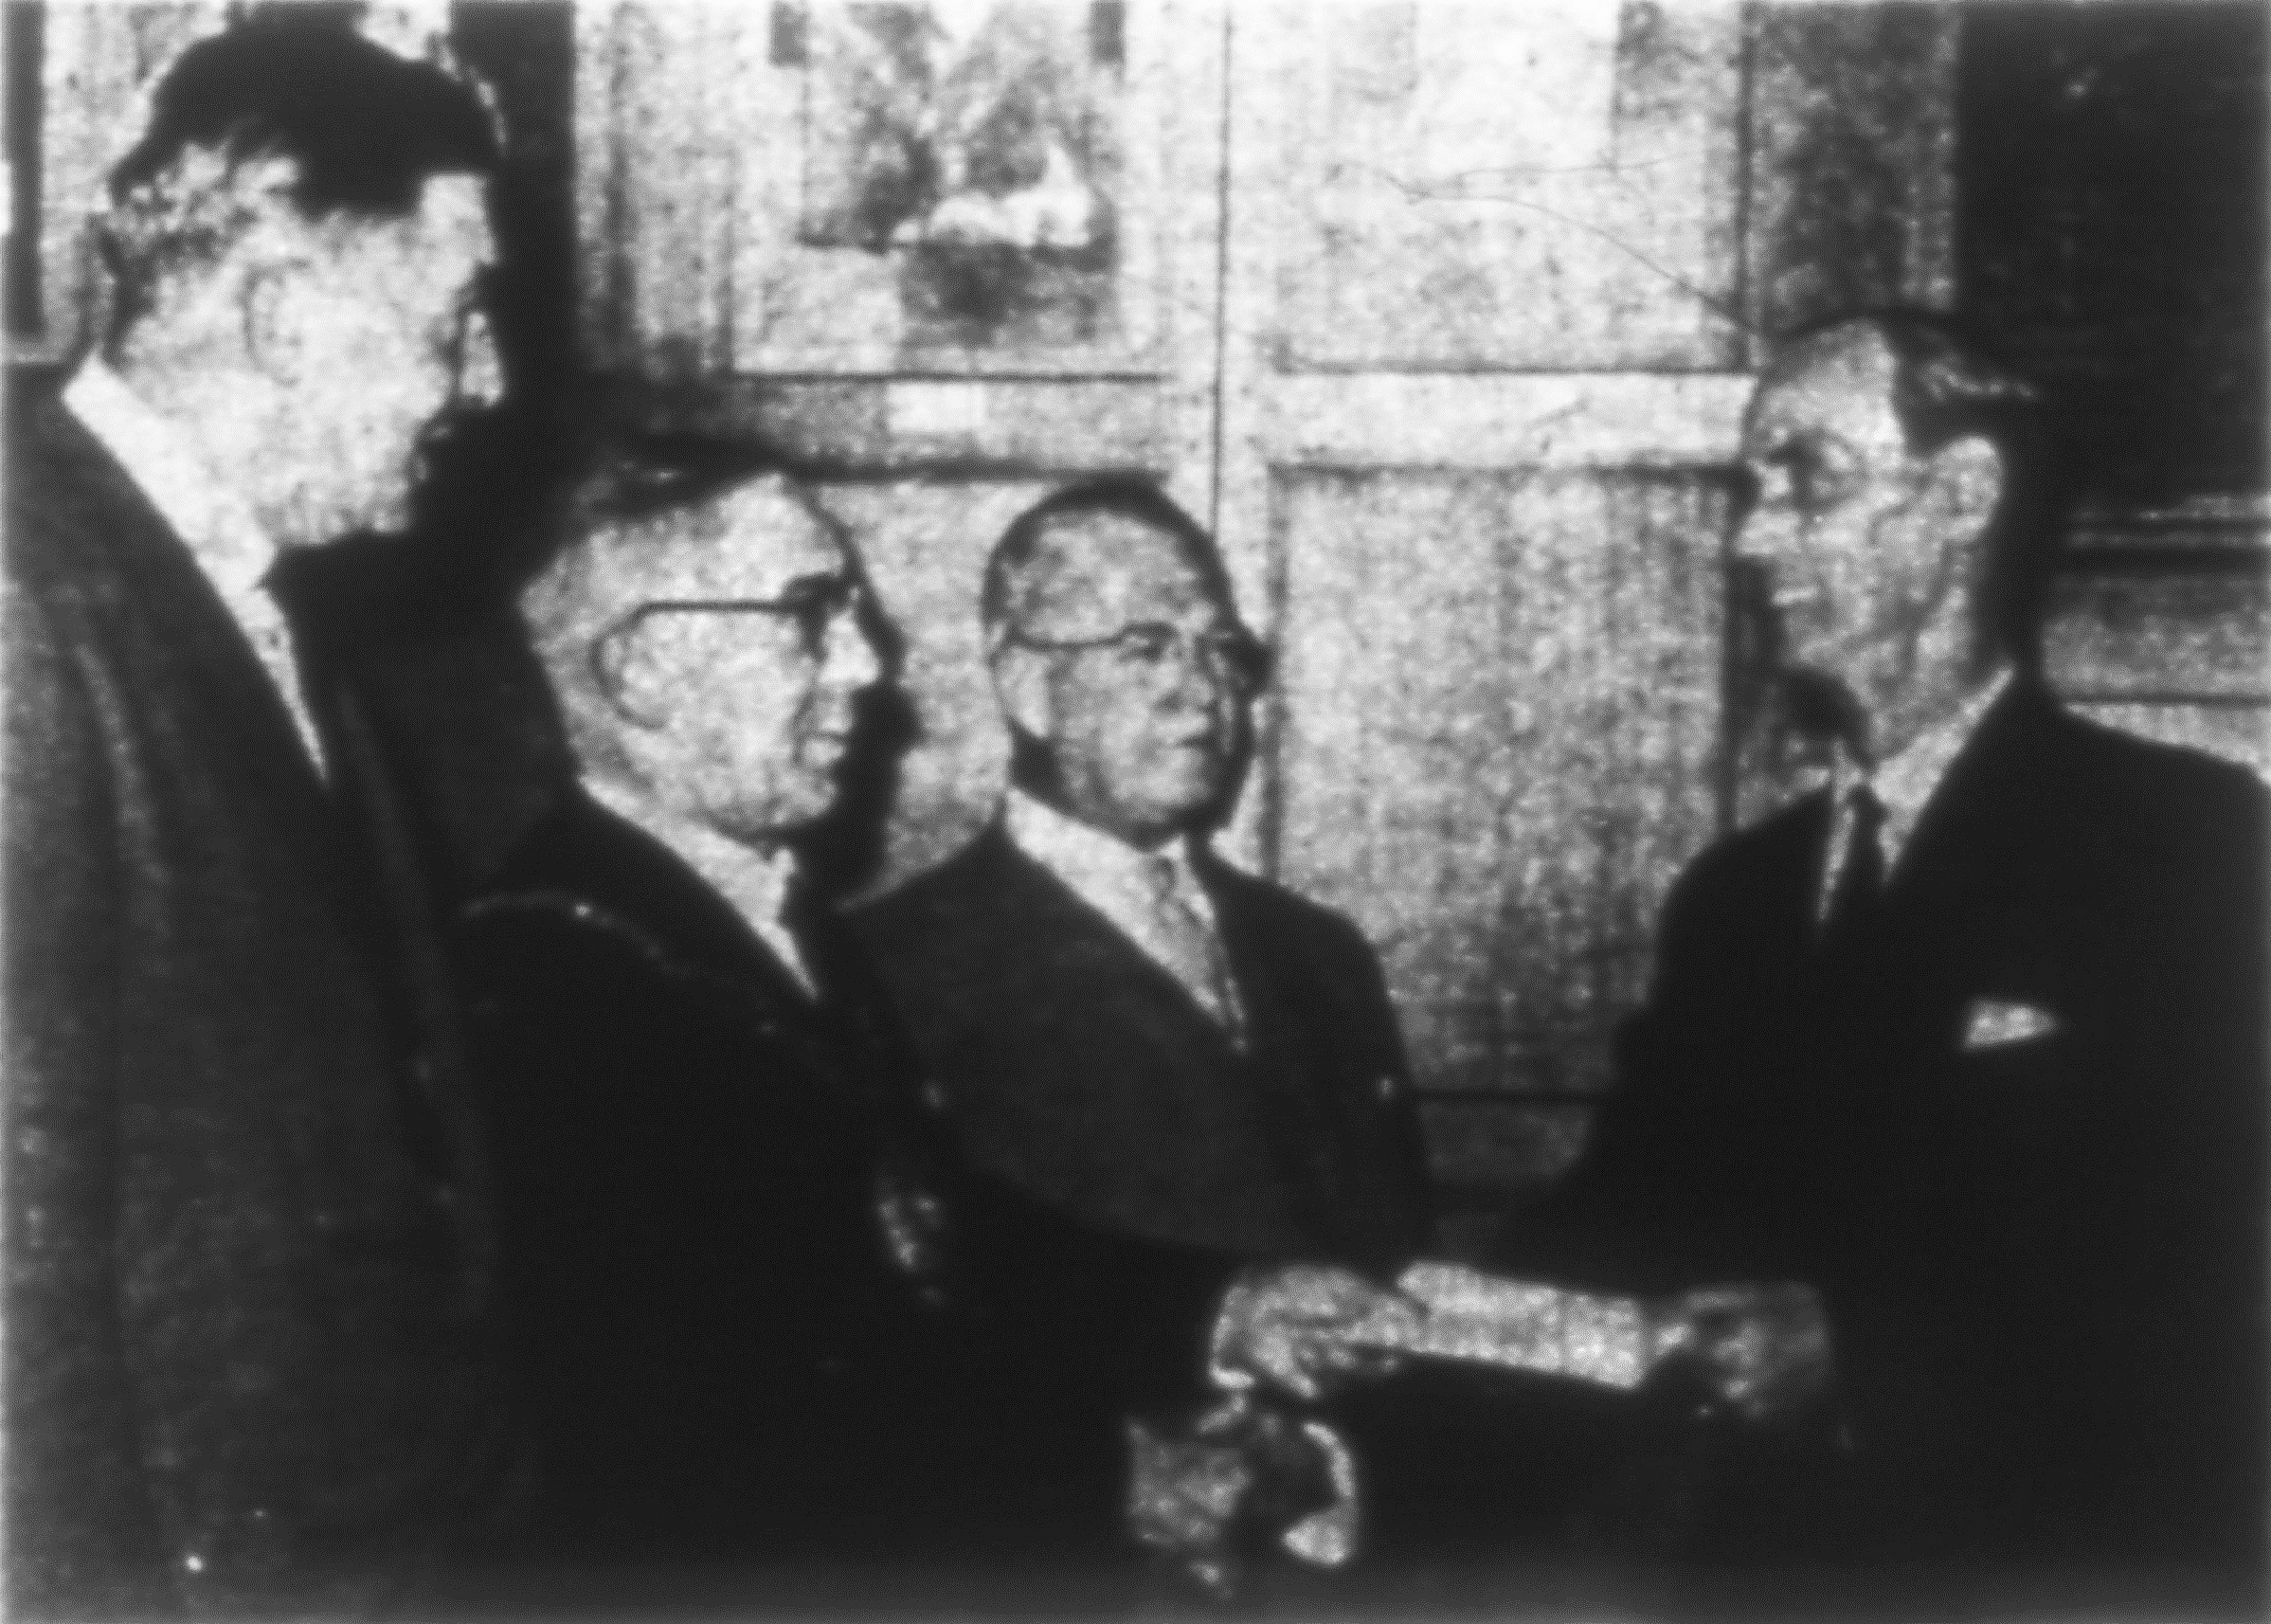 Stationmaster James Miller, right, receives a cheque from the Mayor of Oxford, Alderman Evan Roberts, when he retired in 1962